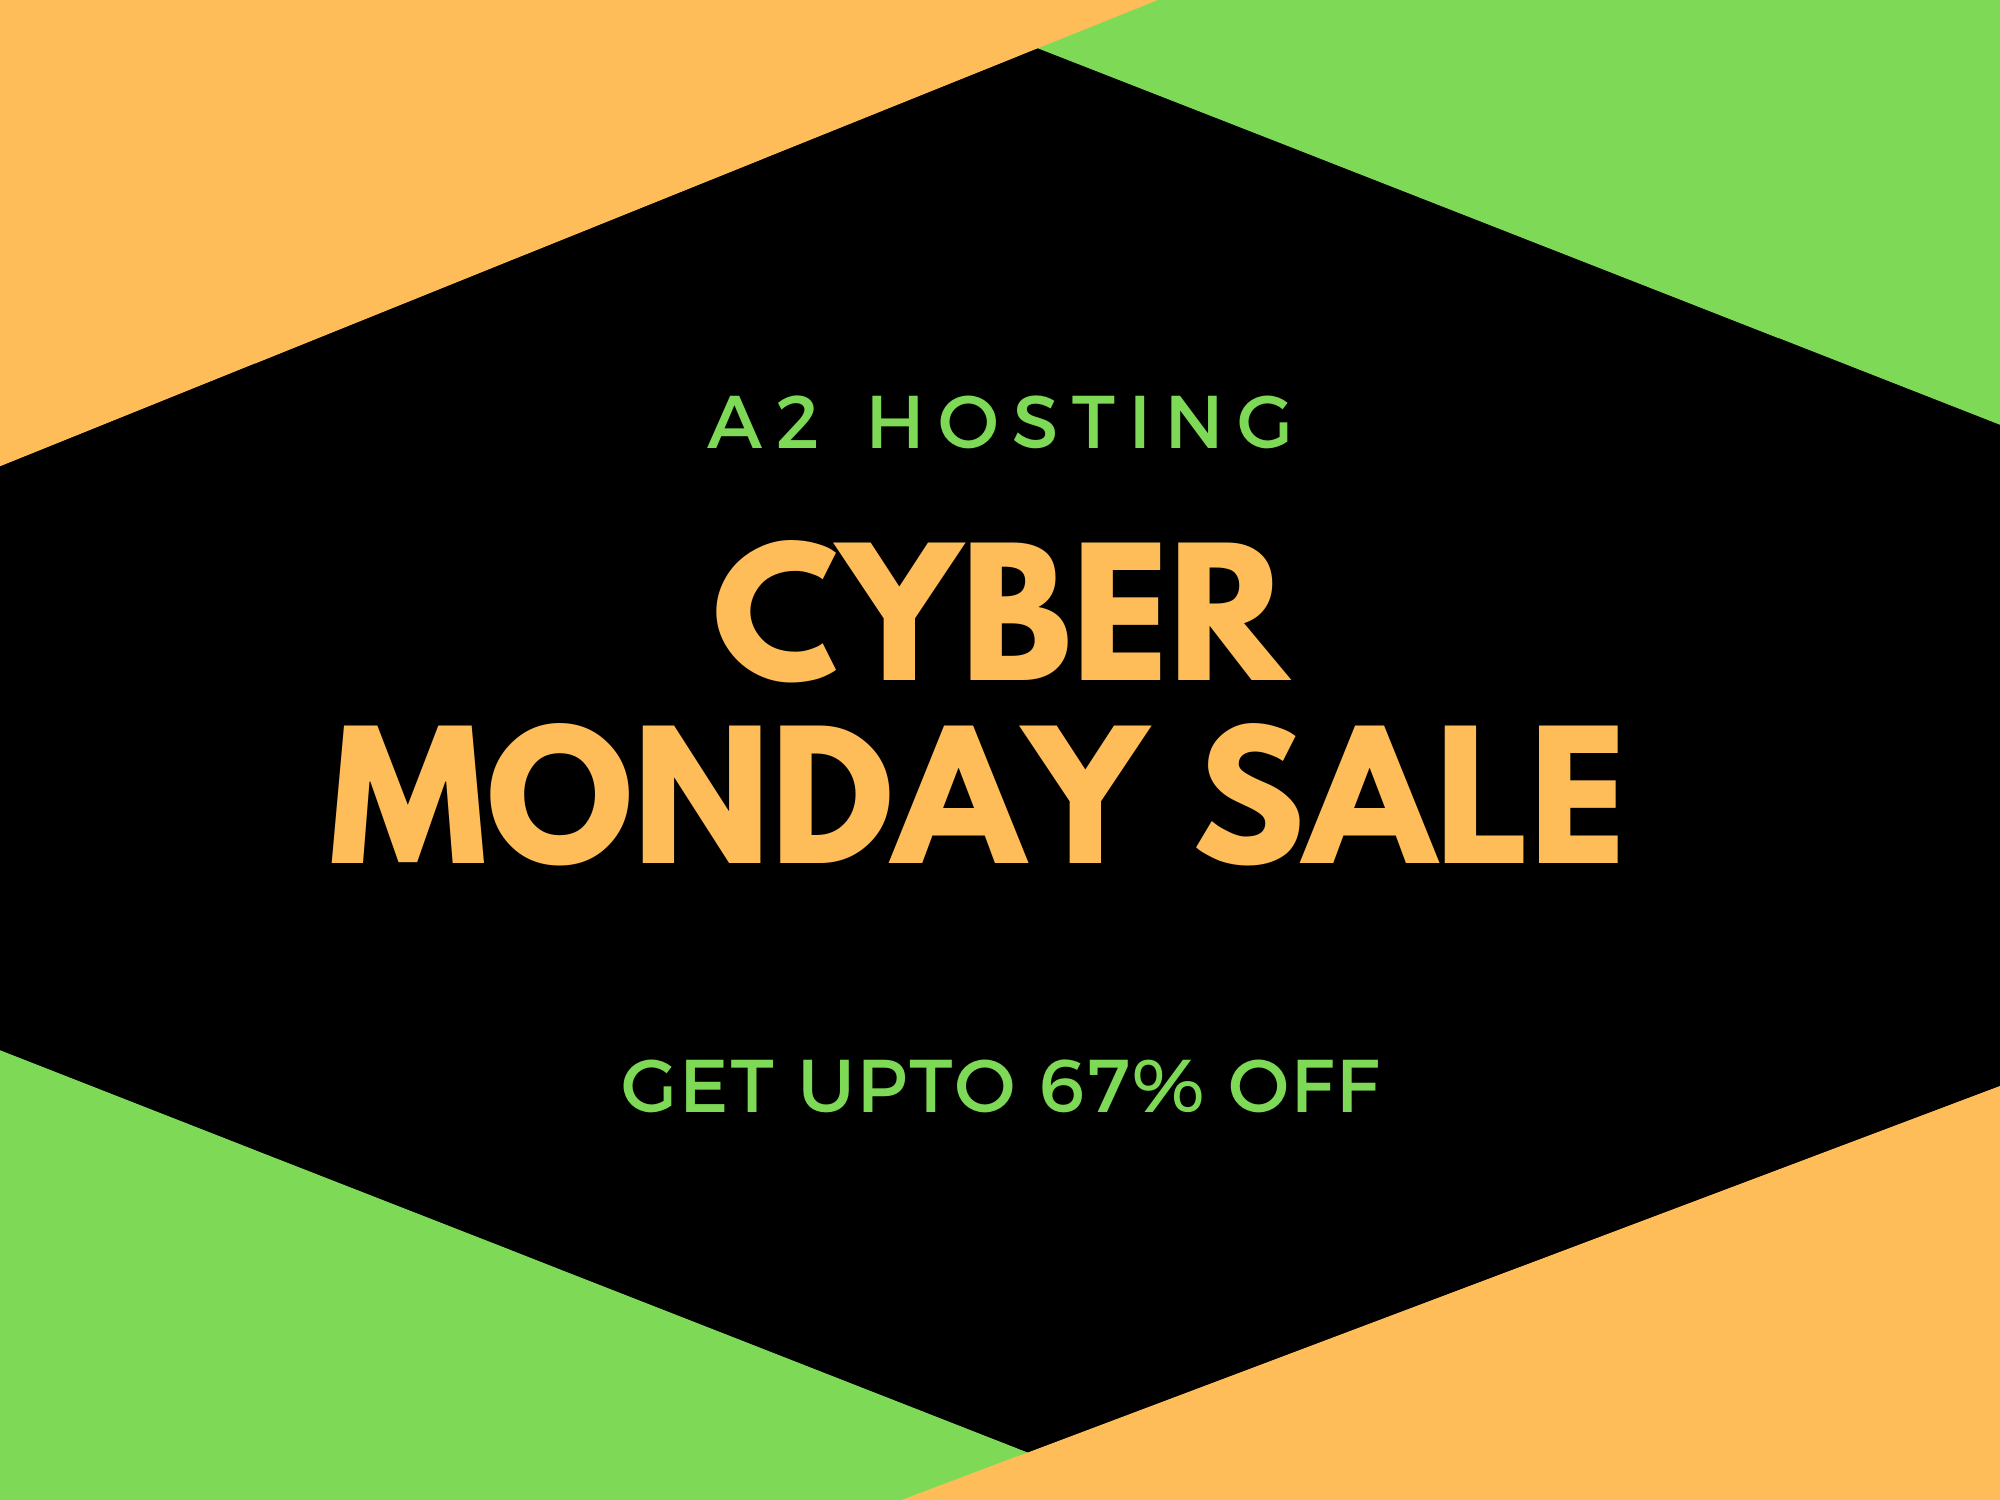 a2 hosting cyber monday deal